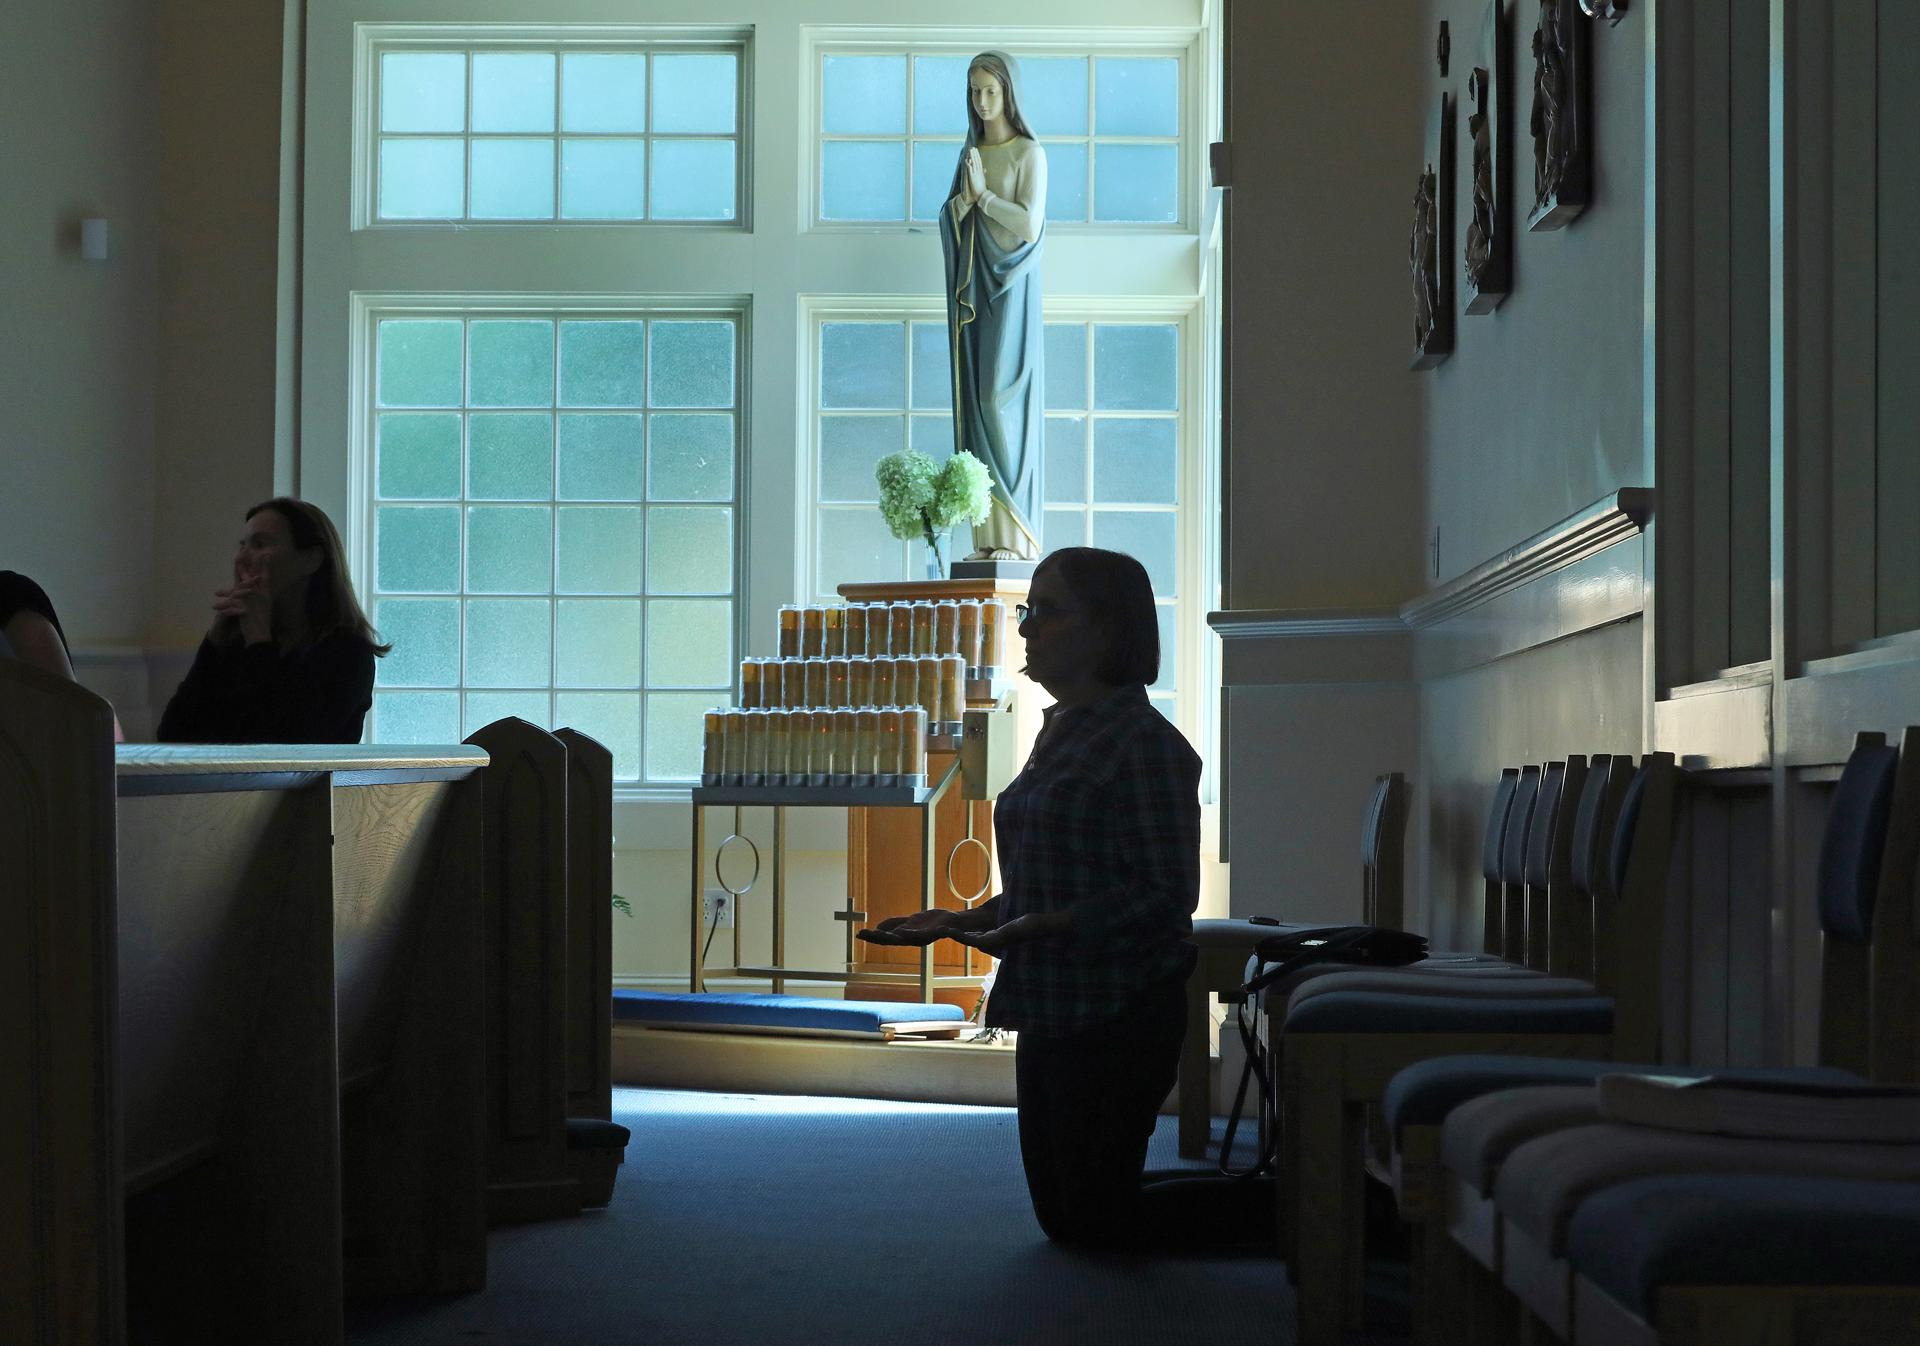 ********************** DO NOT LIGHTEN ******************************* DO NOT LIGHTEN ****************************** DO NOT LIGHTEN **************** Hanson, MA - 9/2/18 - Catherine Dicker (cq), a member of this church's sister parish, kneels in prayer, in the rear. Father Michael Hobson (cq) celebrates Mass in St. Joseph the Worker Parish, as local Catholics deal with the current upheaval over cover-ups of sex crimes in the church. Photo by Pat Greenhouse/Globe Staff Topic: 09catholics Reporter: Jenna Russell